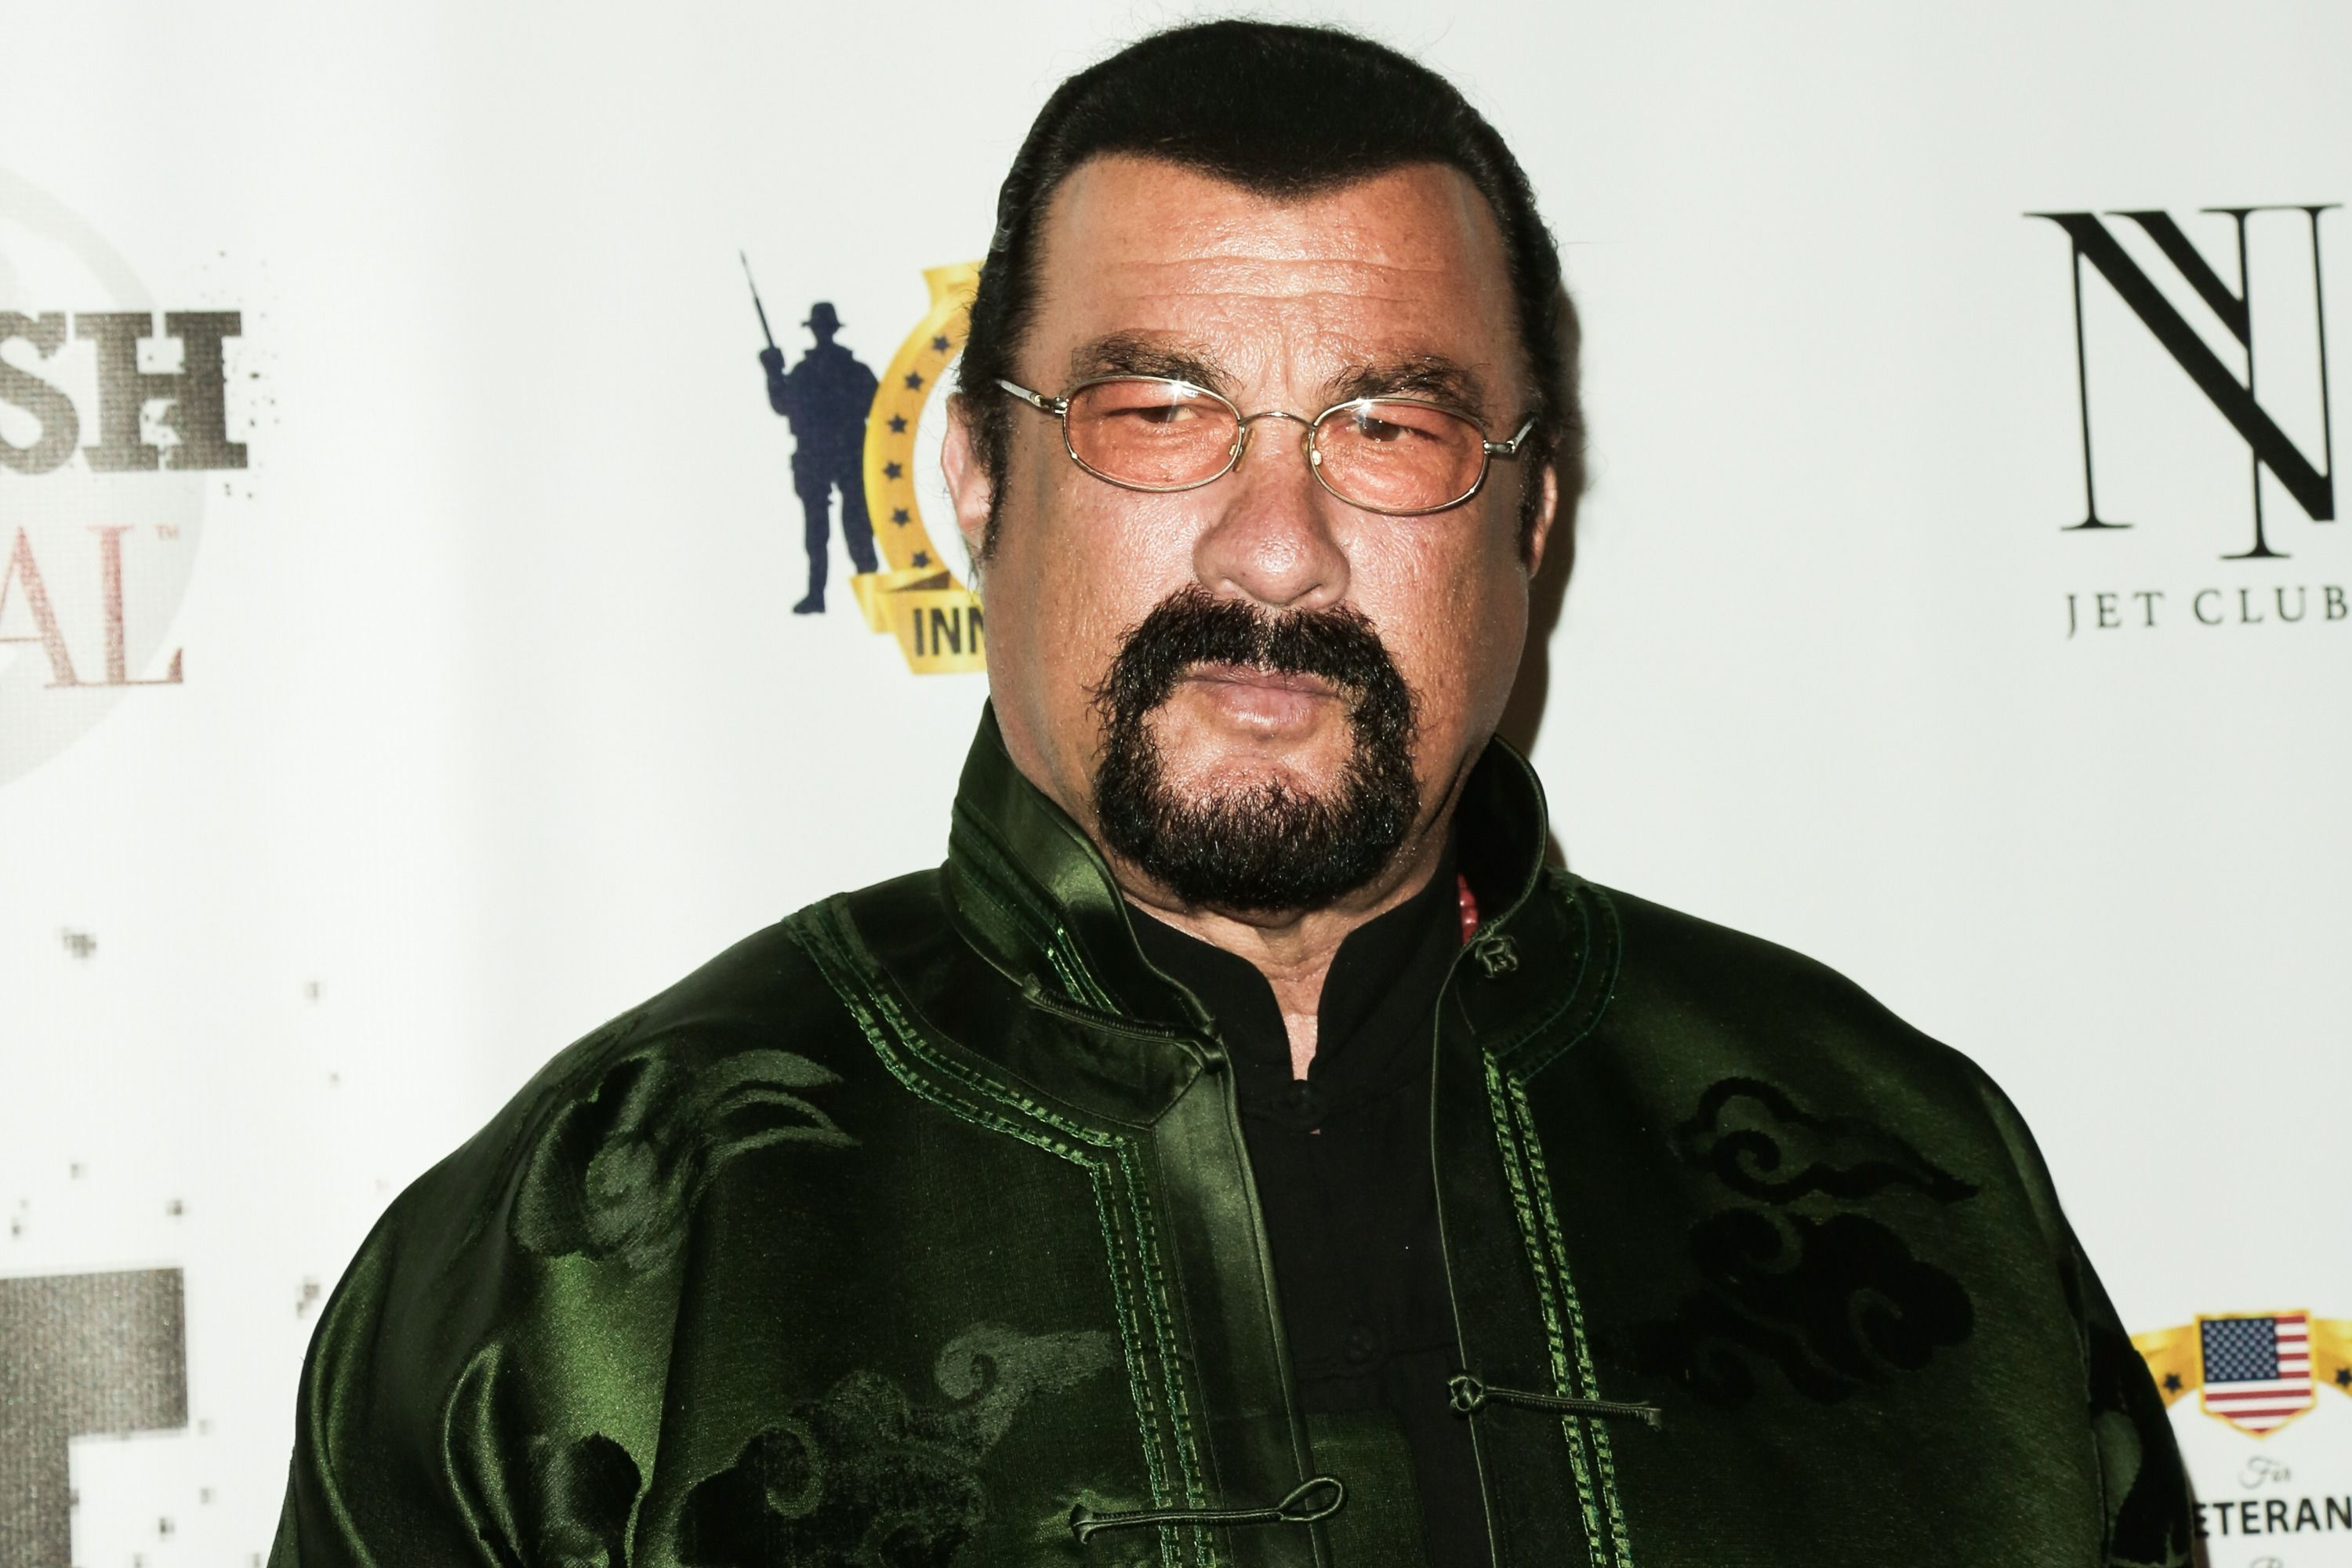 George Foreman Wants To Have A Street Fight With Steven Seagal